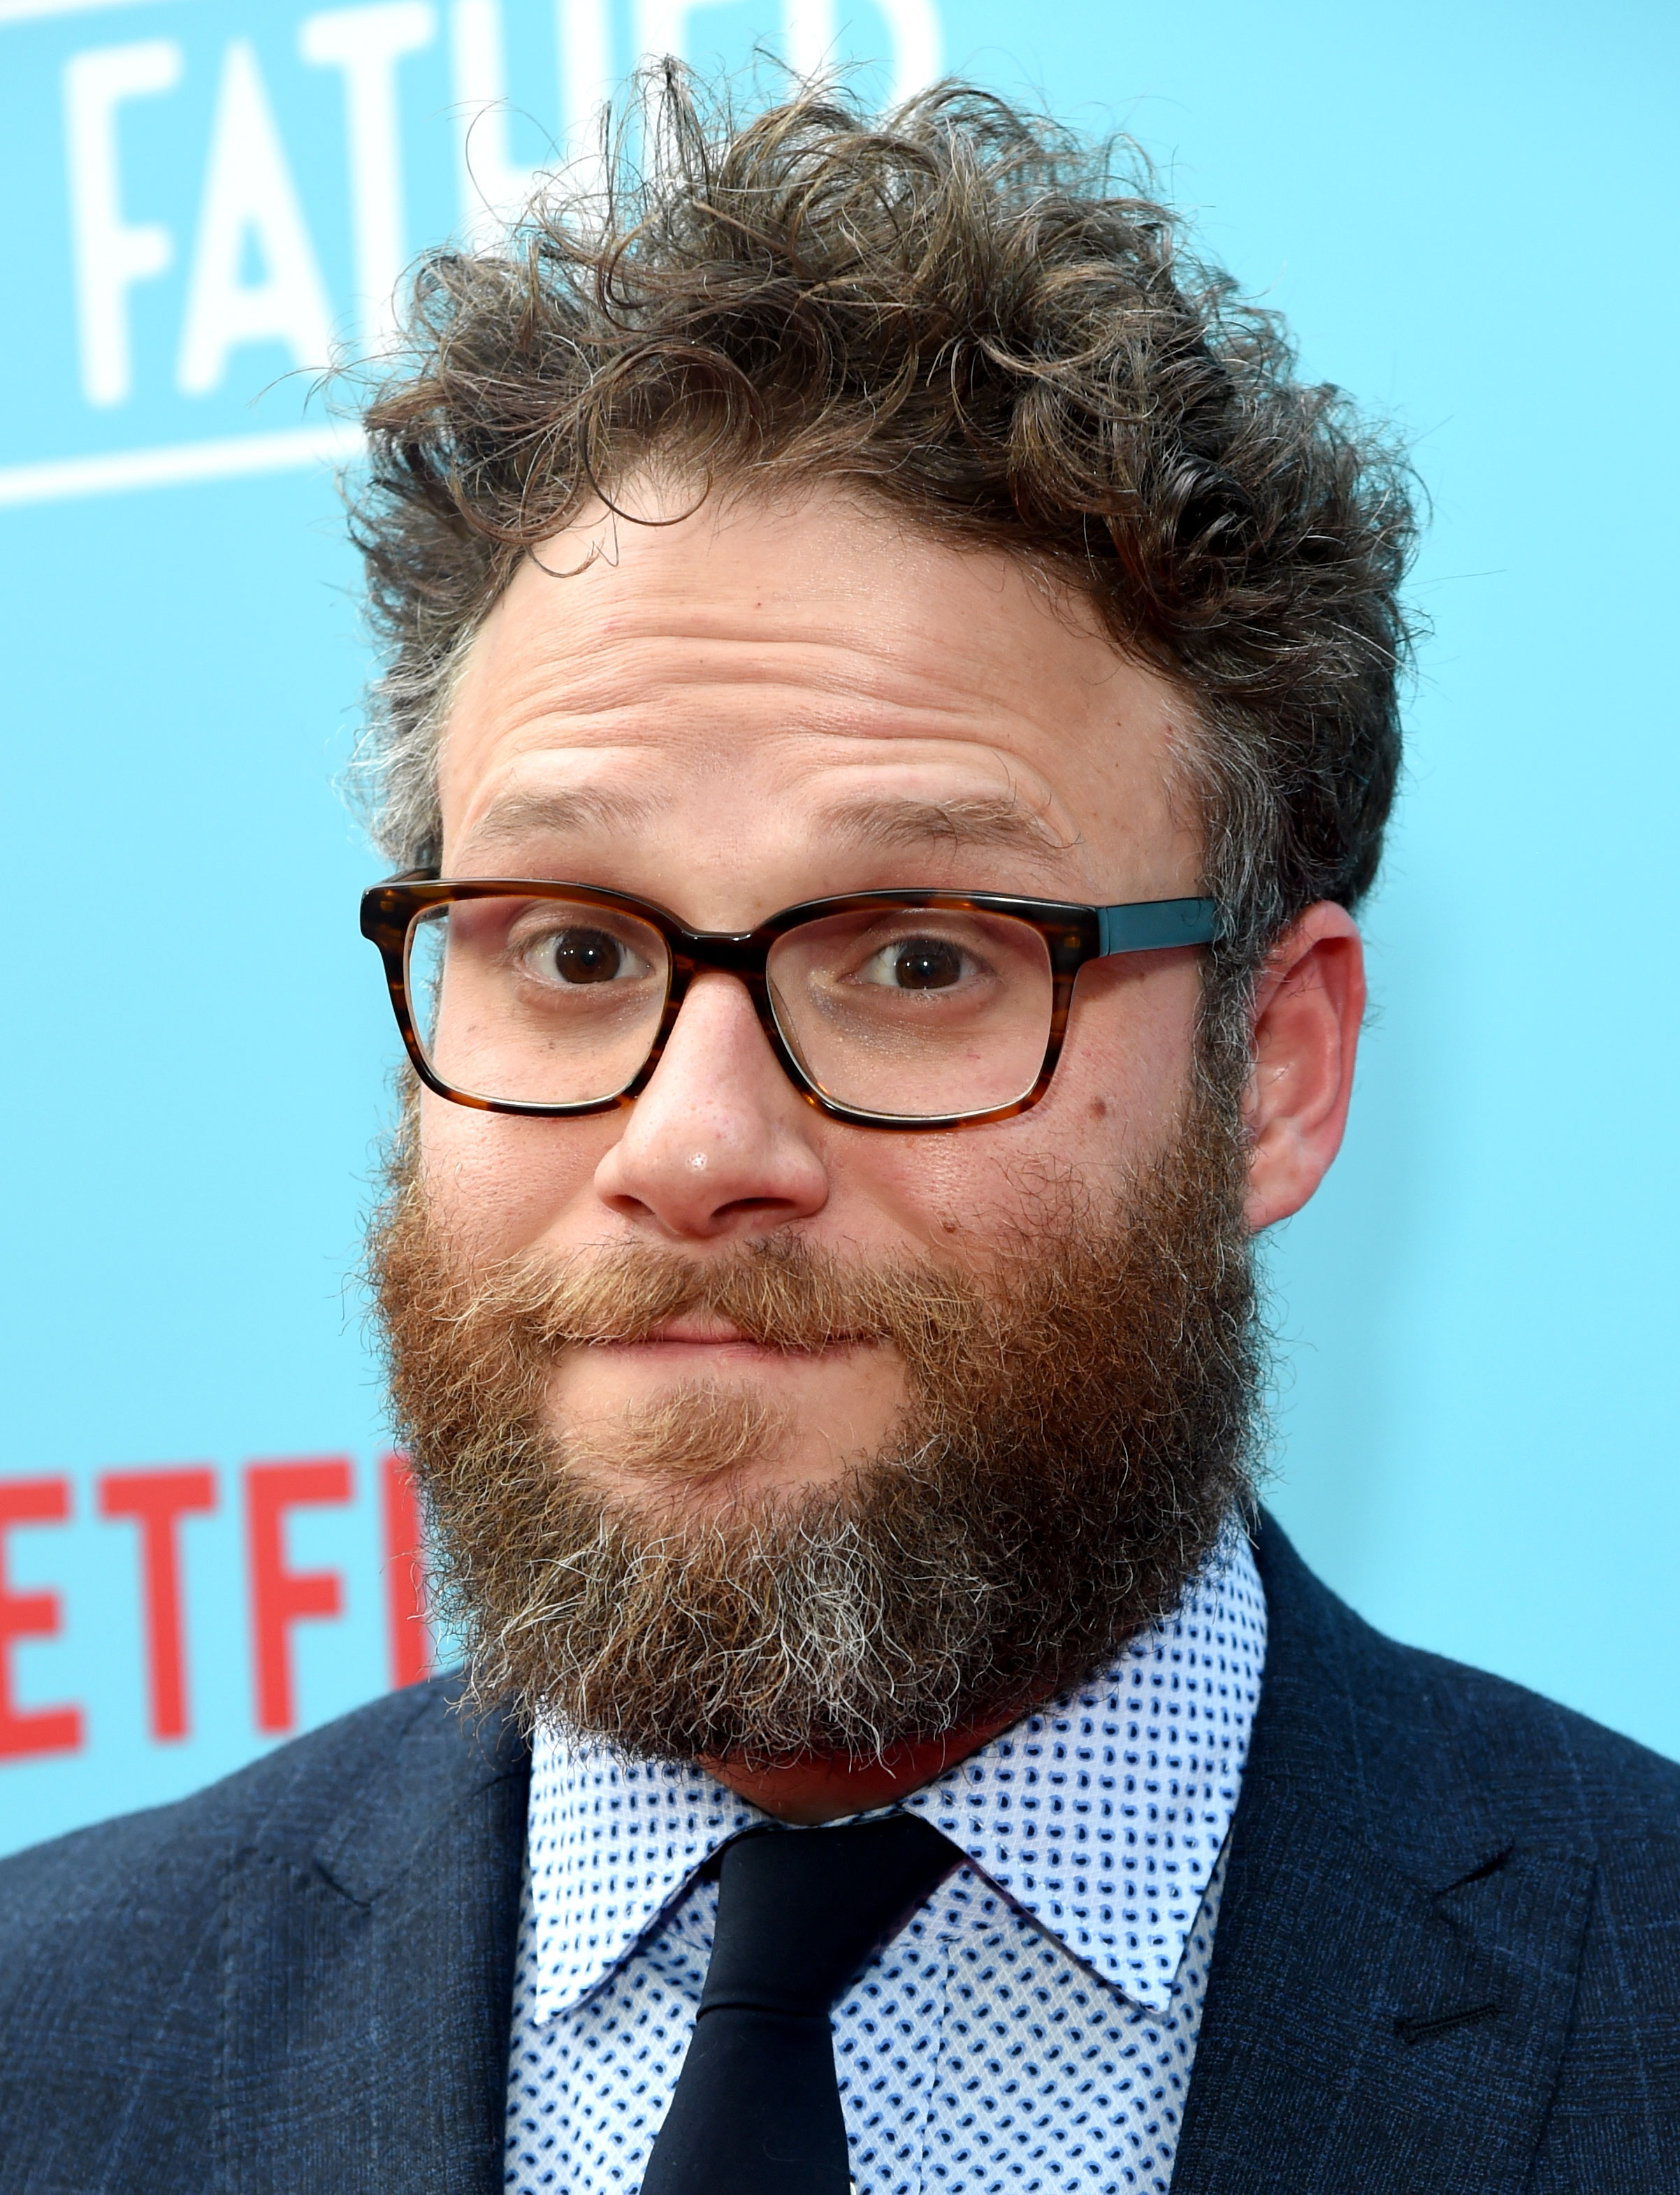 """Every Celeb Appearing on the New 'Twilight Zone' Seth Rogen - Comedian Seth Rogen will star in an episode written by Alex Rubens . While no other details have been revealed, Rogen did tweet that it's one of his """"favorite shows of all time."""""""